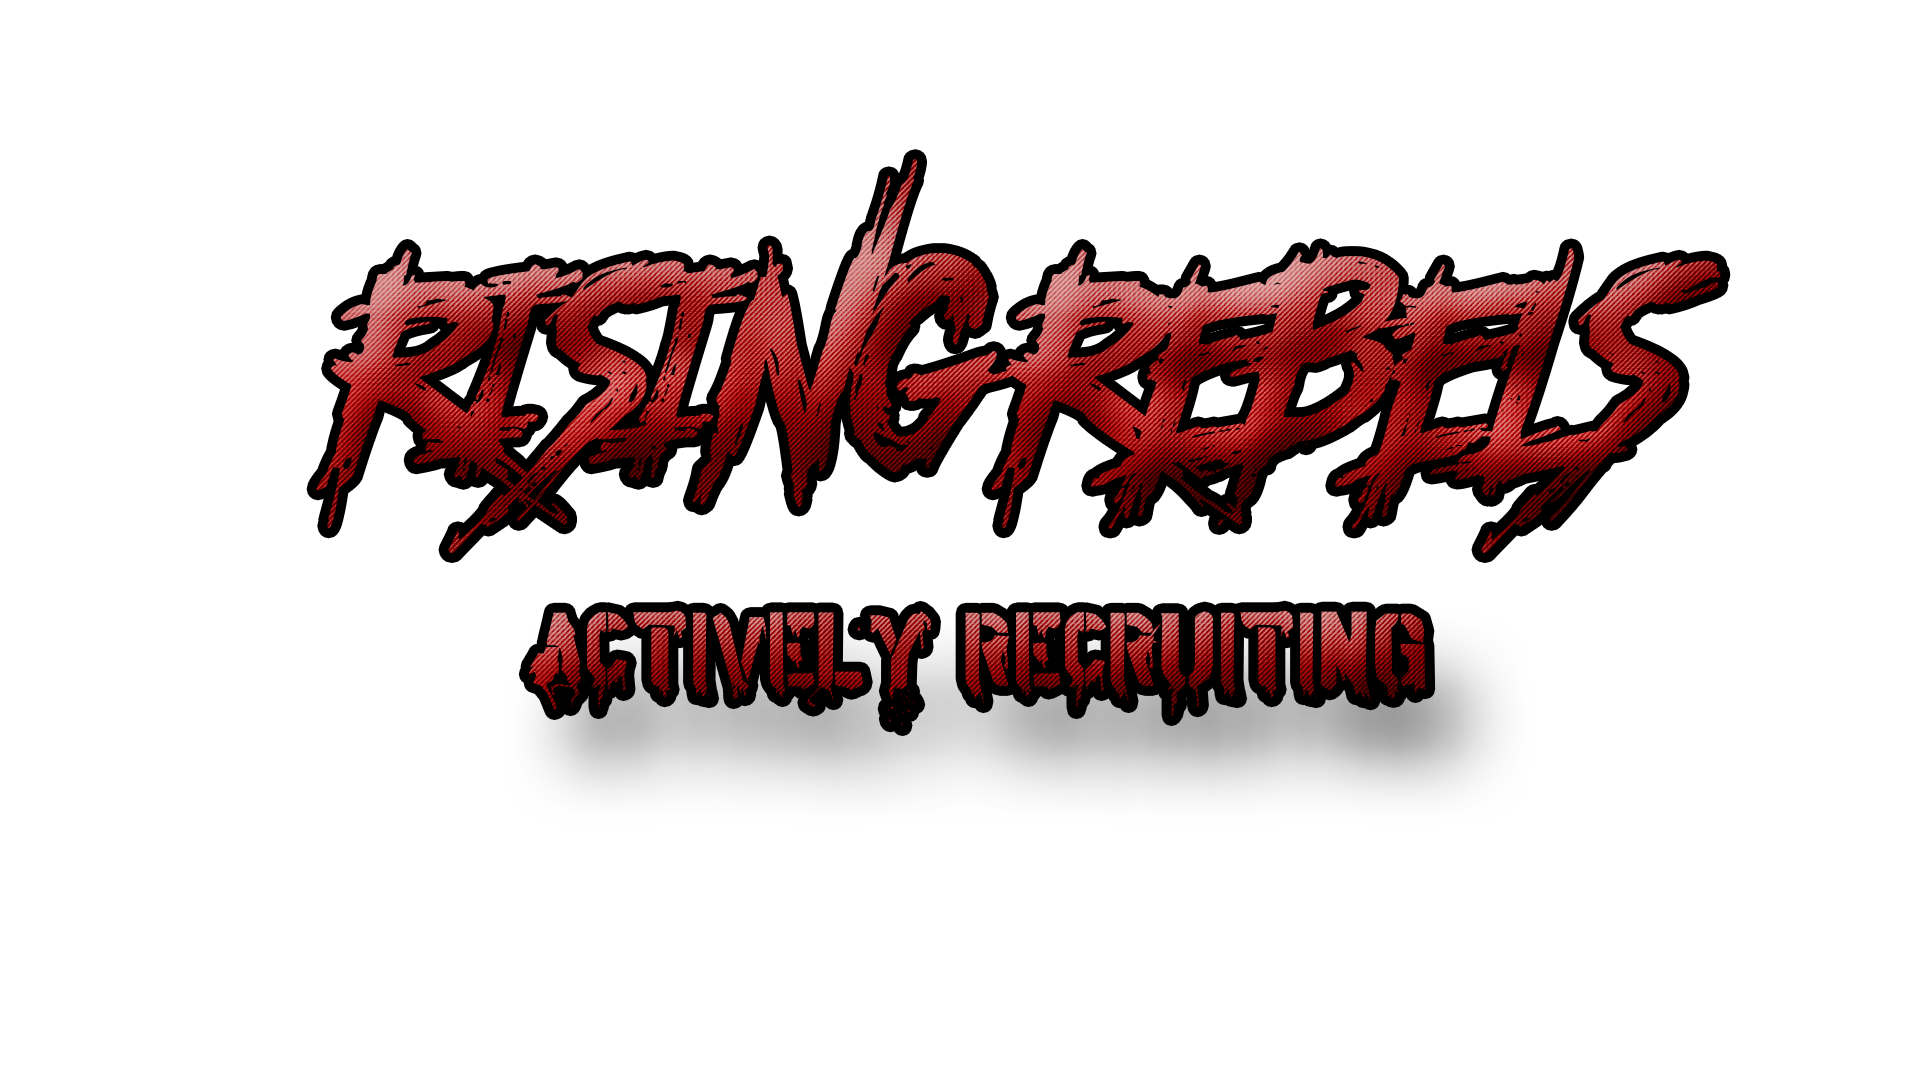 activelyrecruiting_1547445542.png